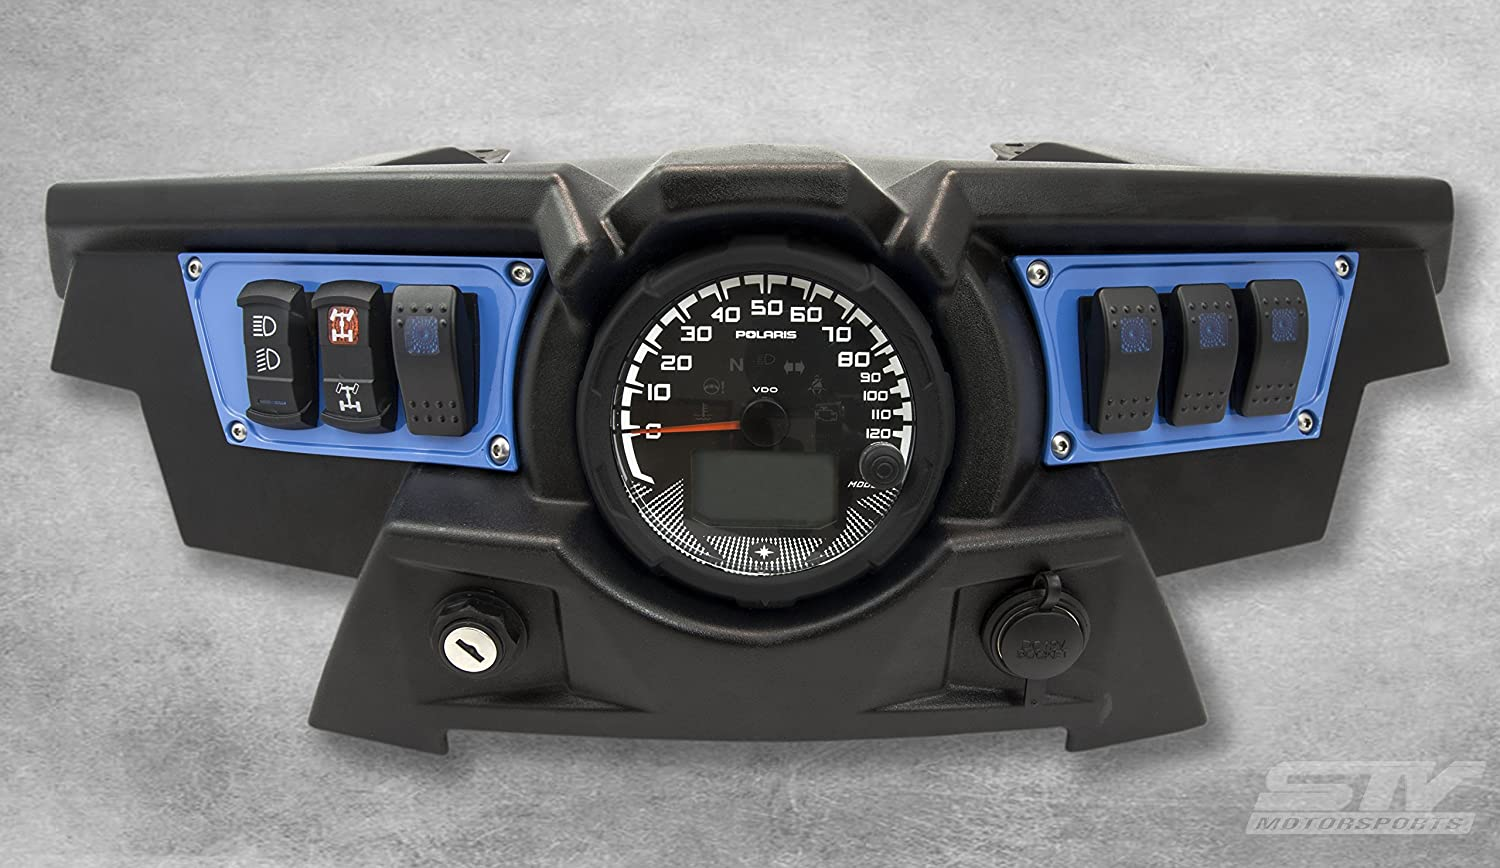 STVMotorsports Custom Inventory cleanup selling sale Aluminum Blue Dash 2015-2018 Pol Bombing new work Panel for